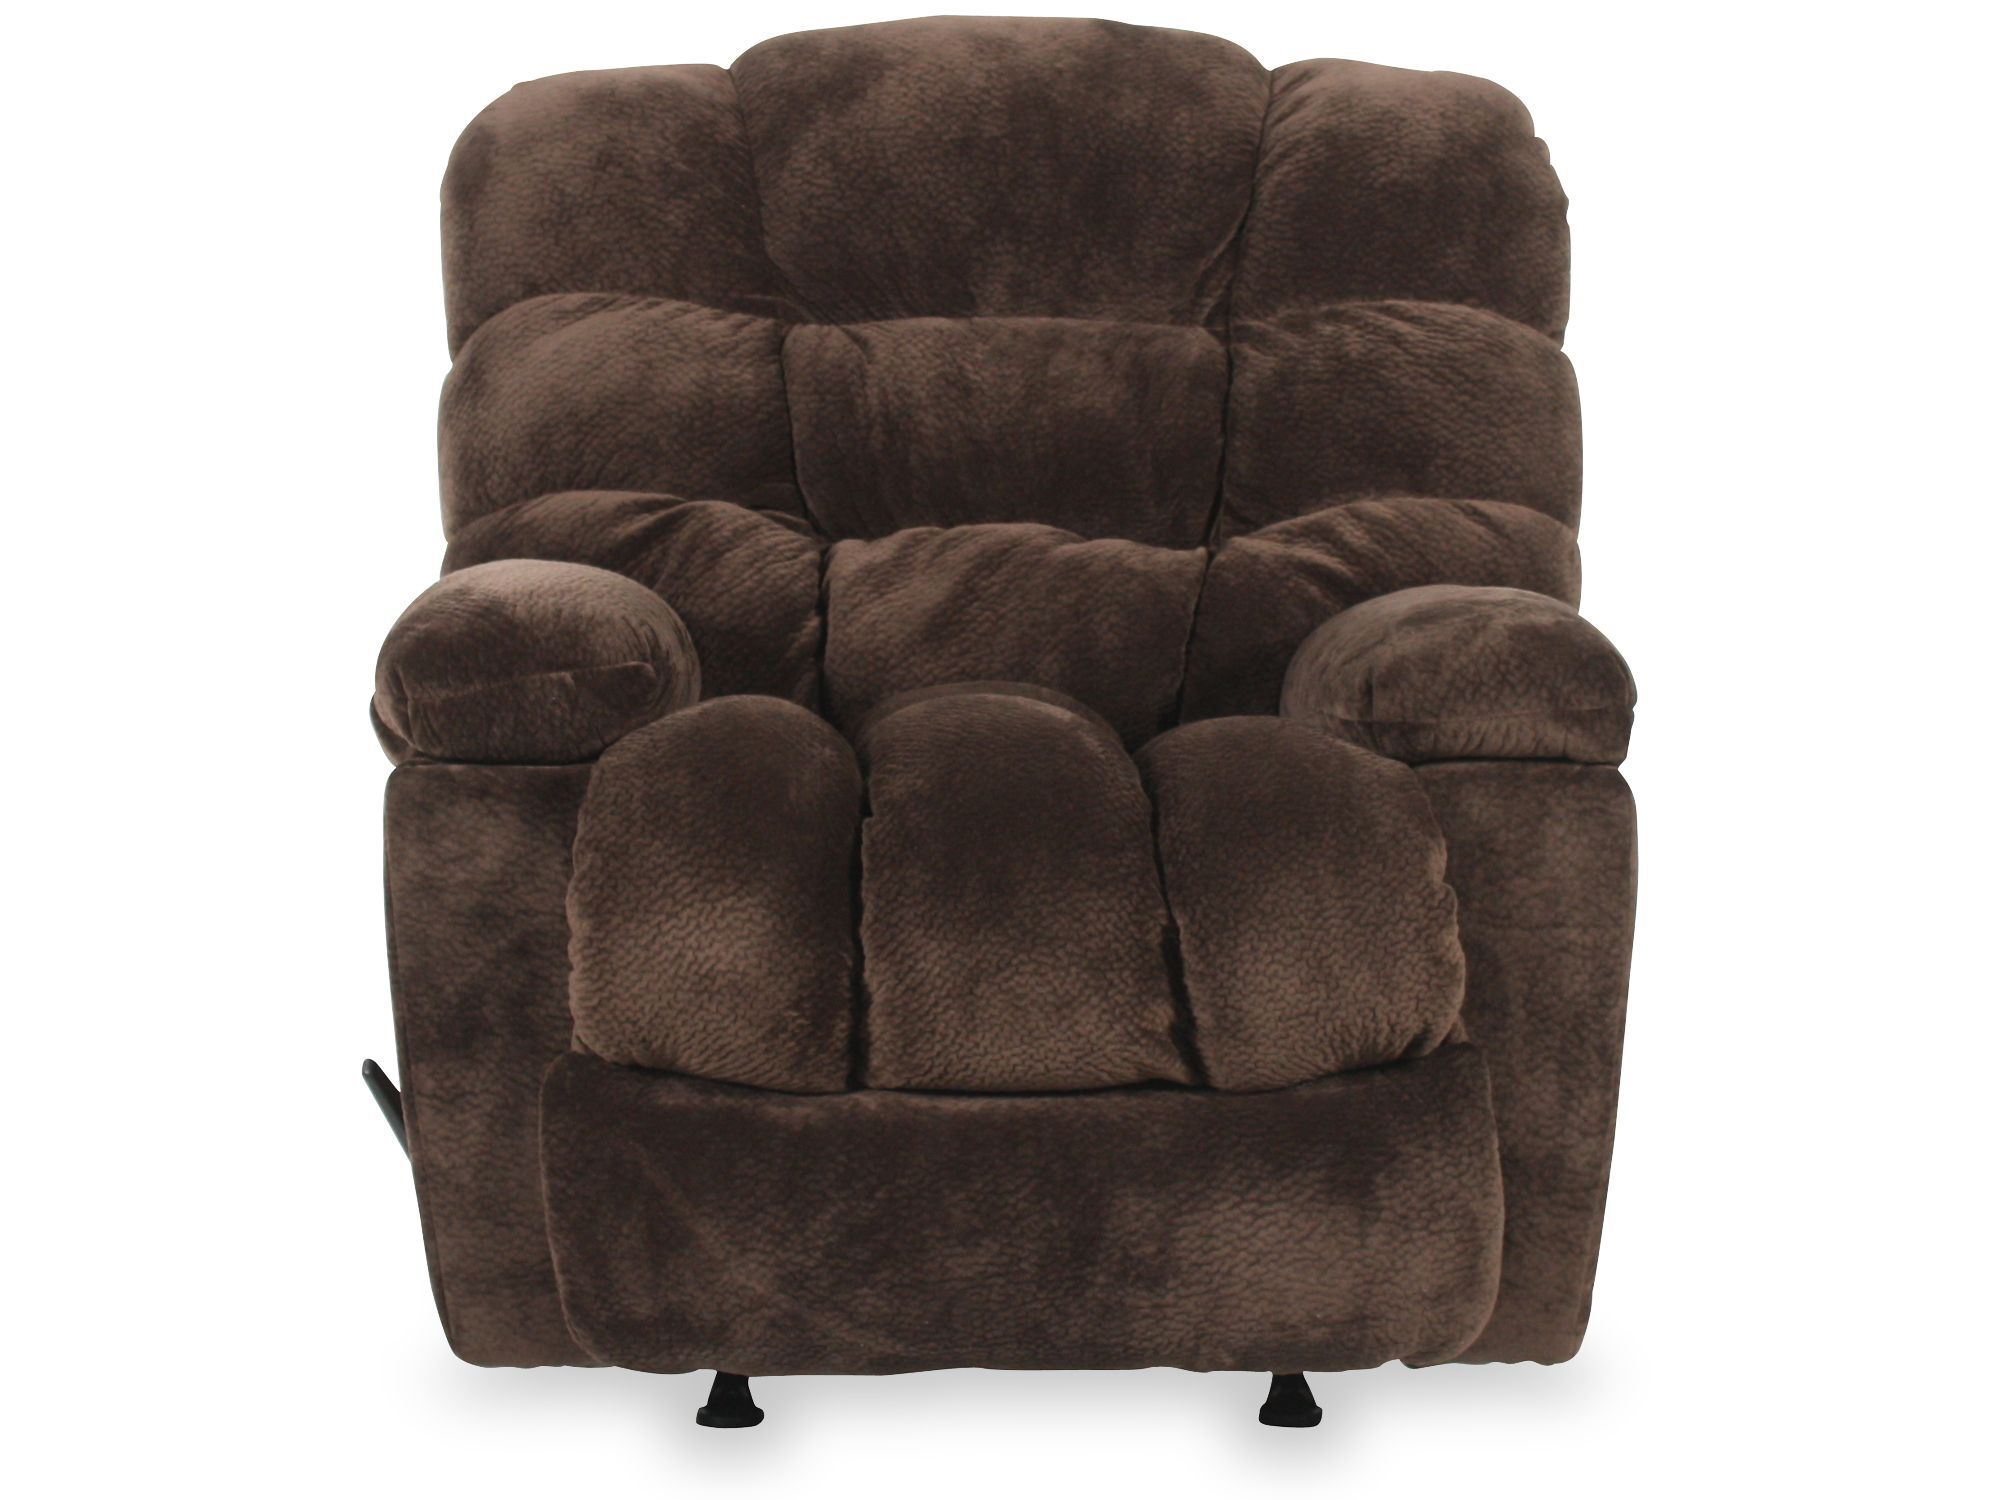 Casual 43 Wall Saver Recliner With Storage Arm In Chocolate